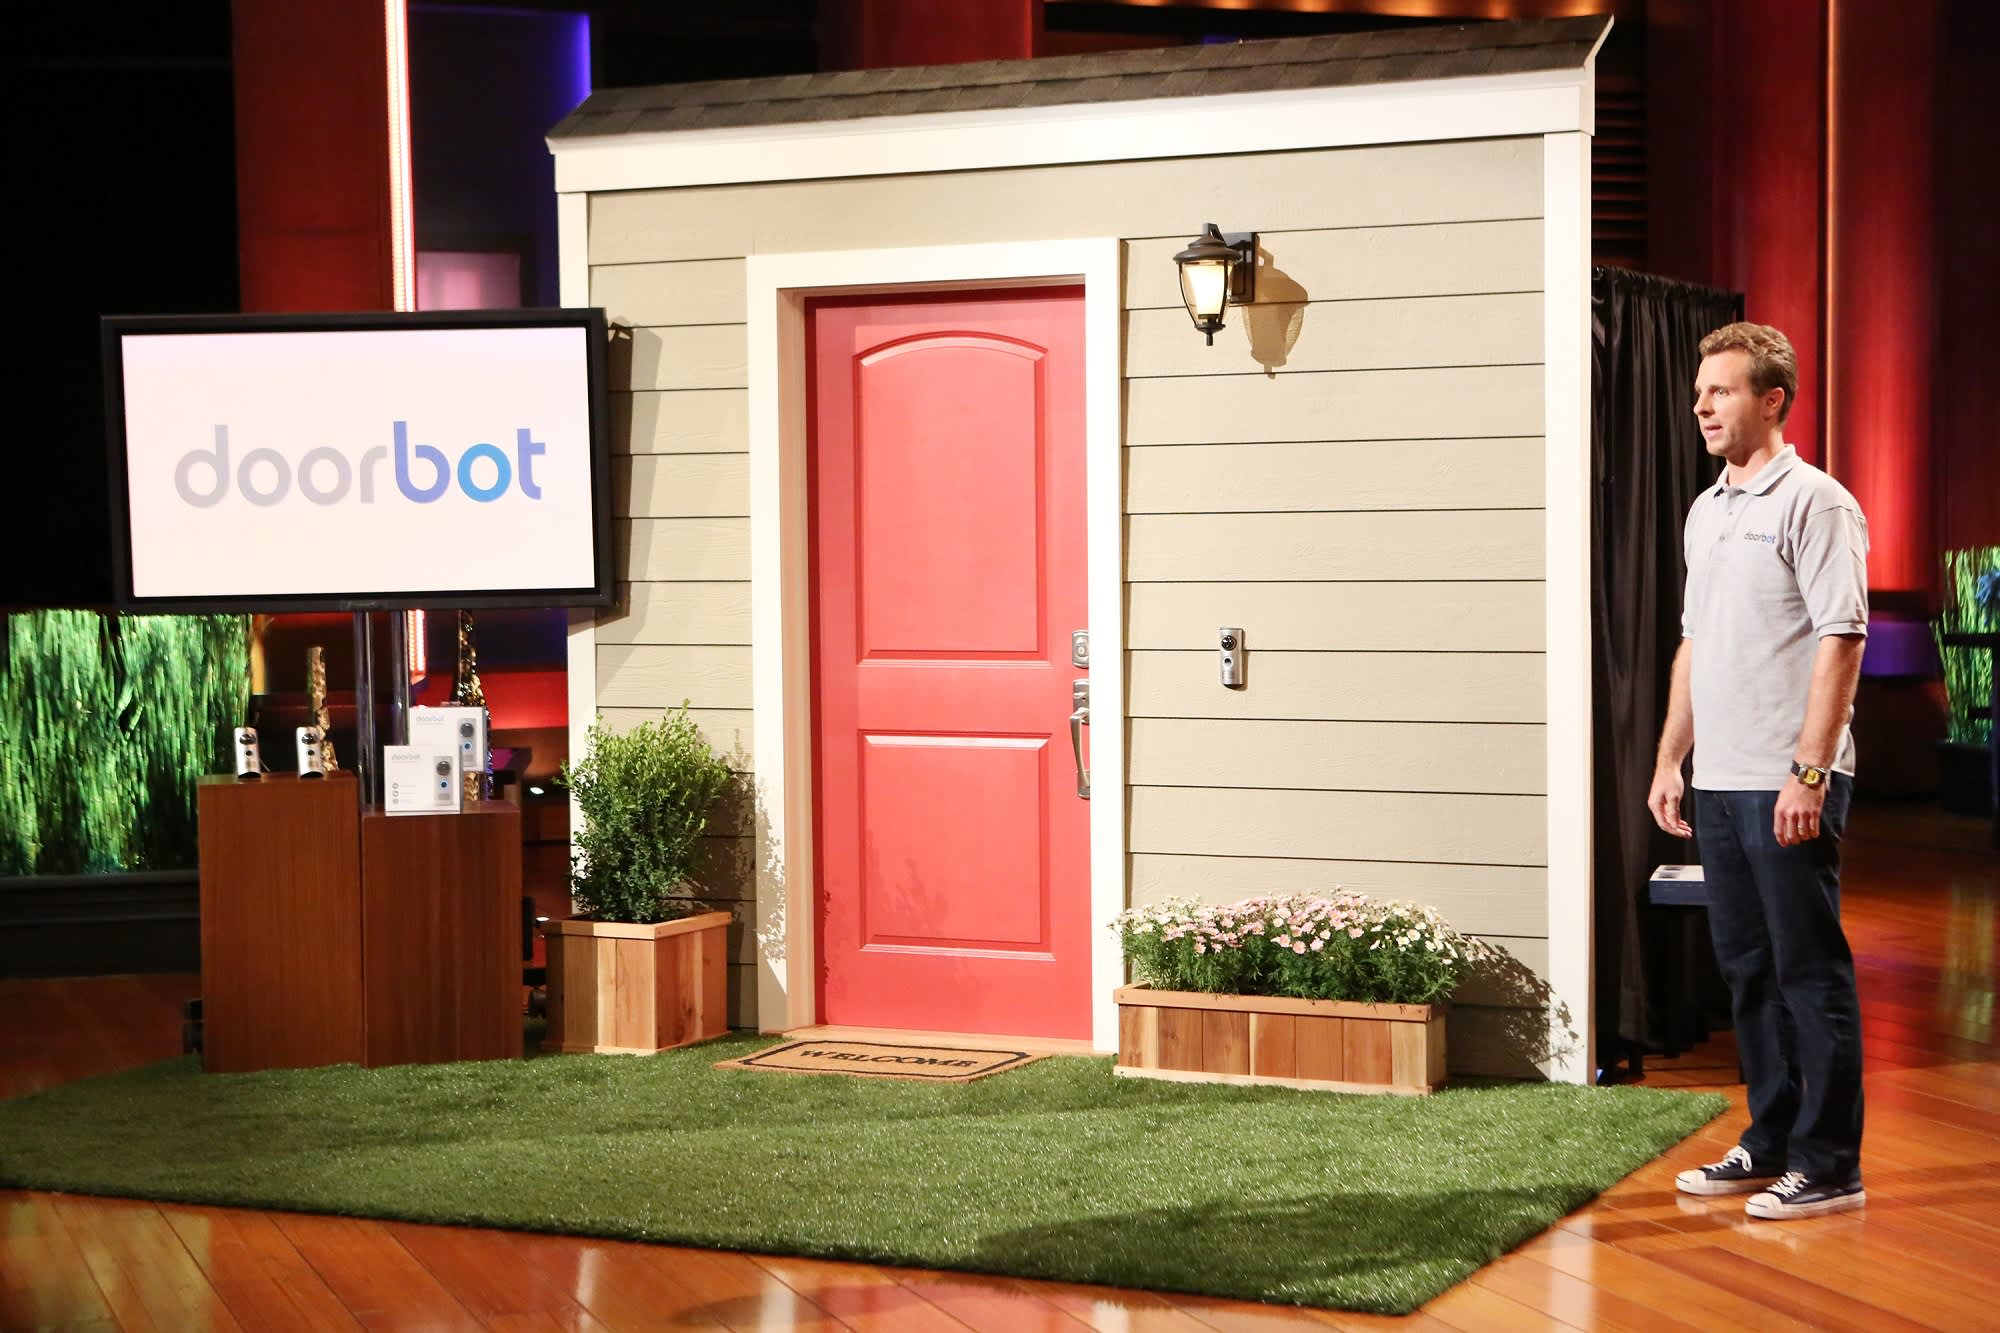 This 1 Billion Company Was Once Rejected On Shark Tank Heres How The Founder Proved Everyone Wrong